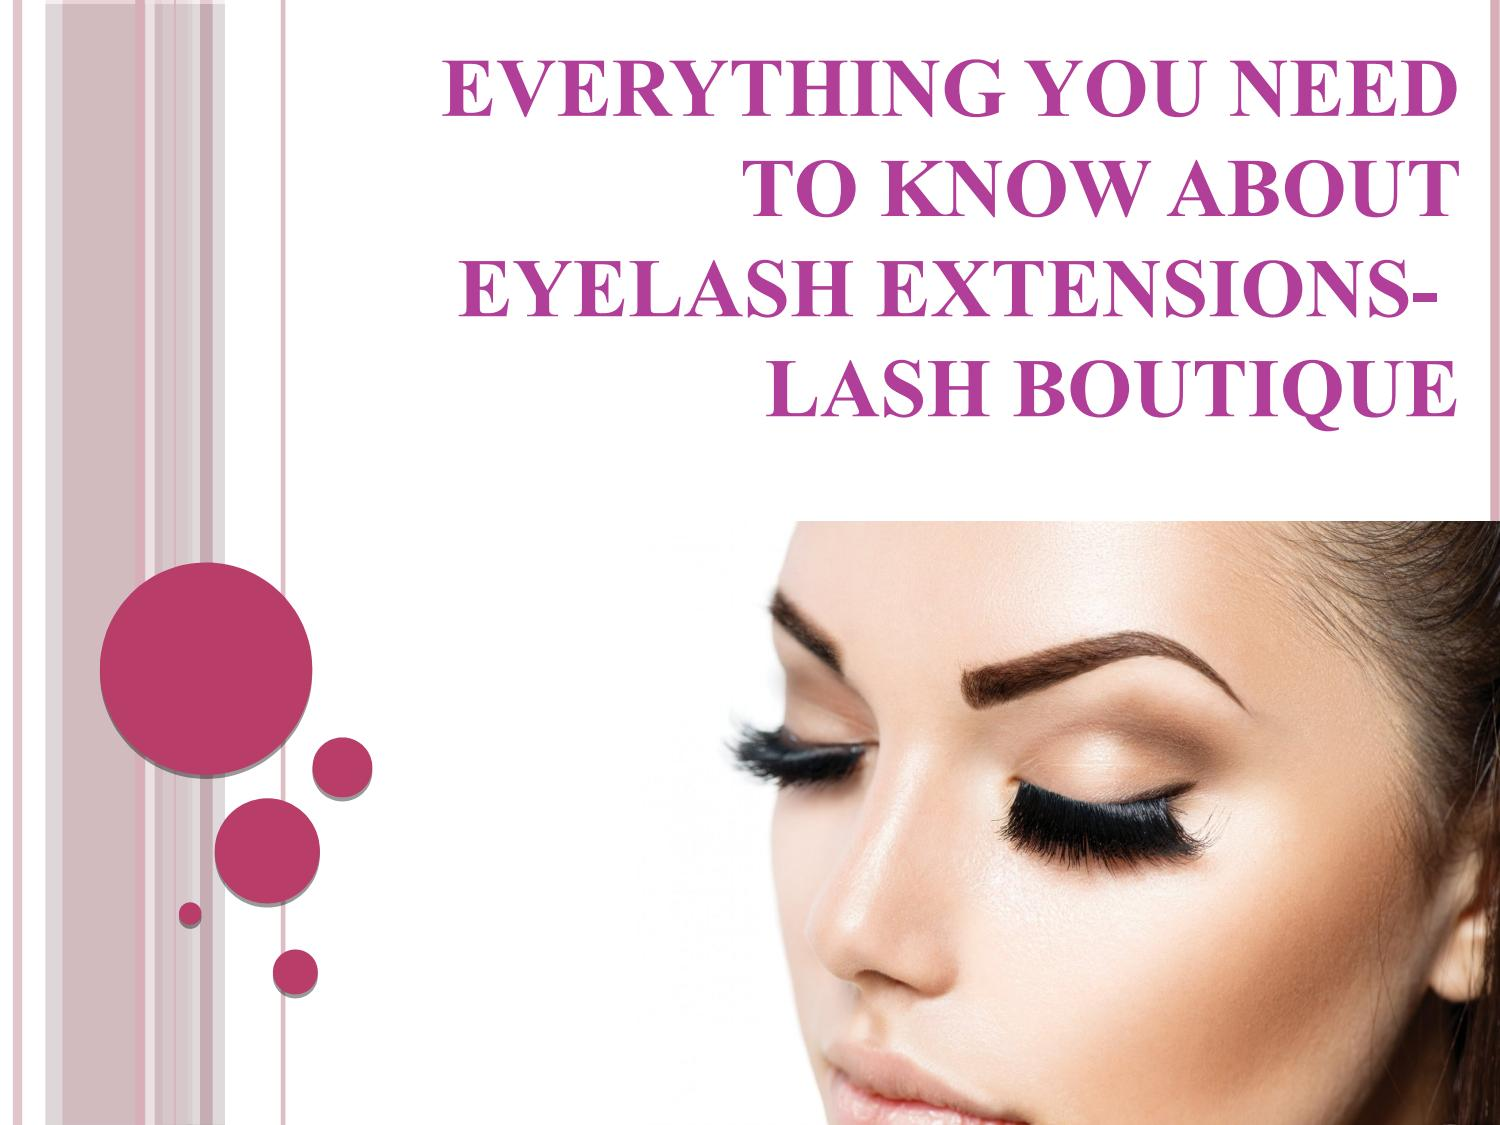 Everything You Need To Know About Eyelash Extensions Lash Boutique